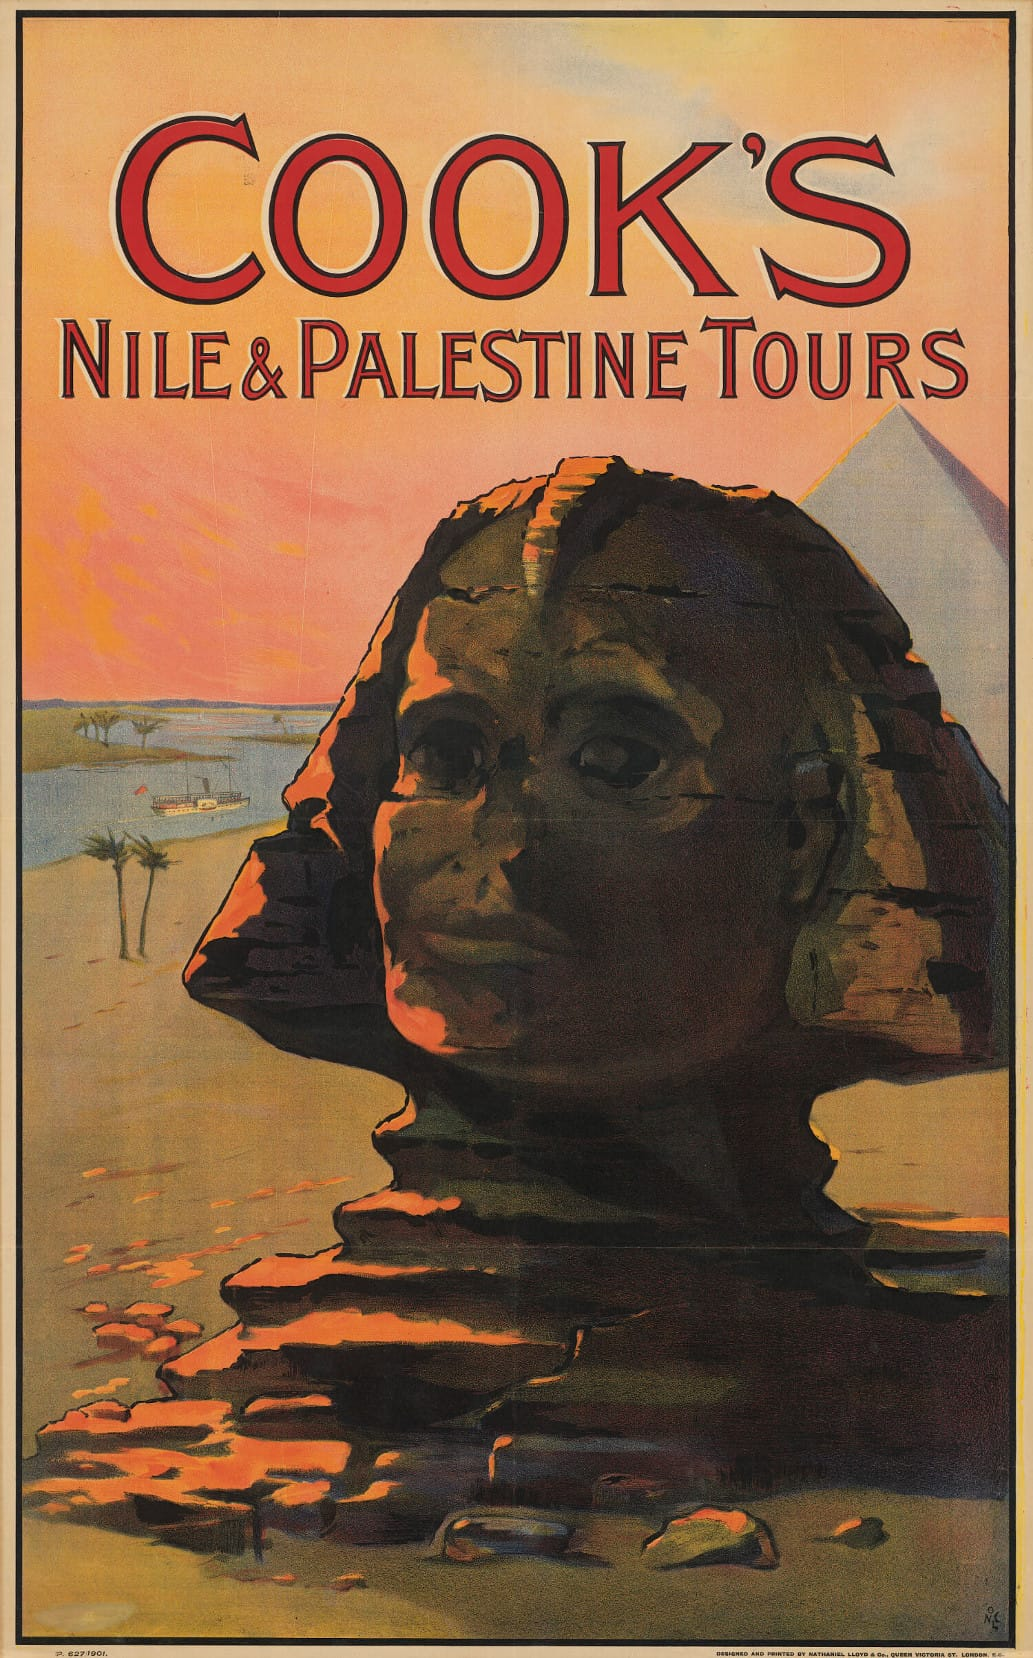 Cook's Nile and Palestine tours poster, featuring a painting of a Sphinx.